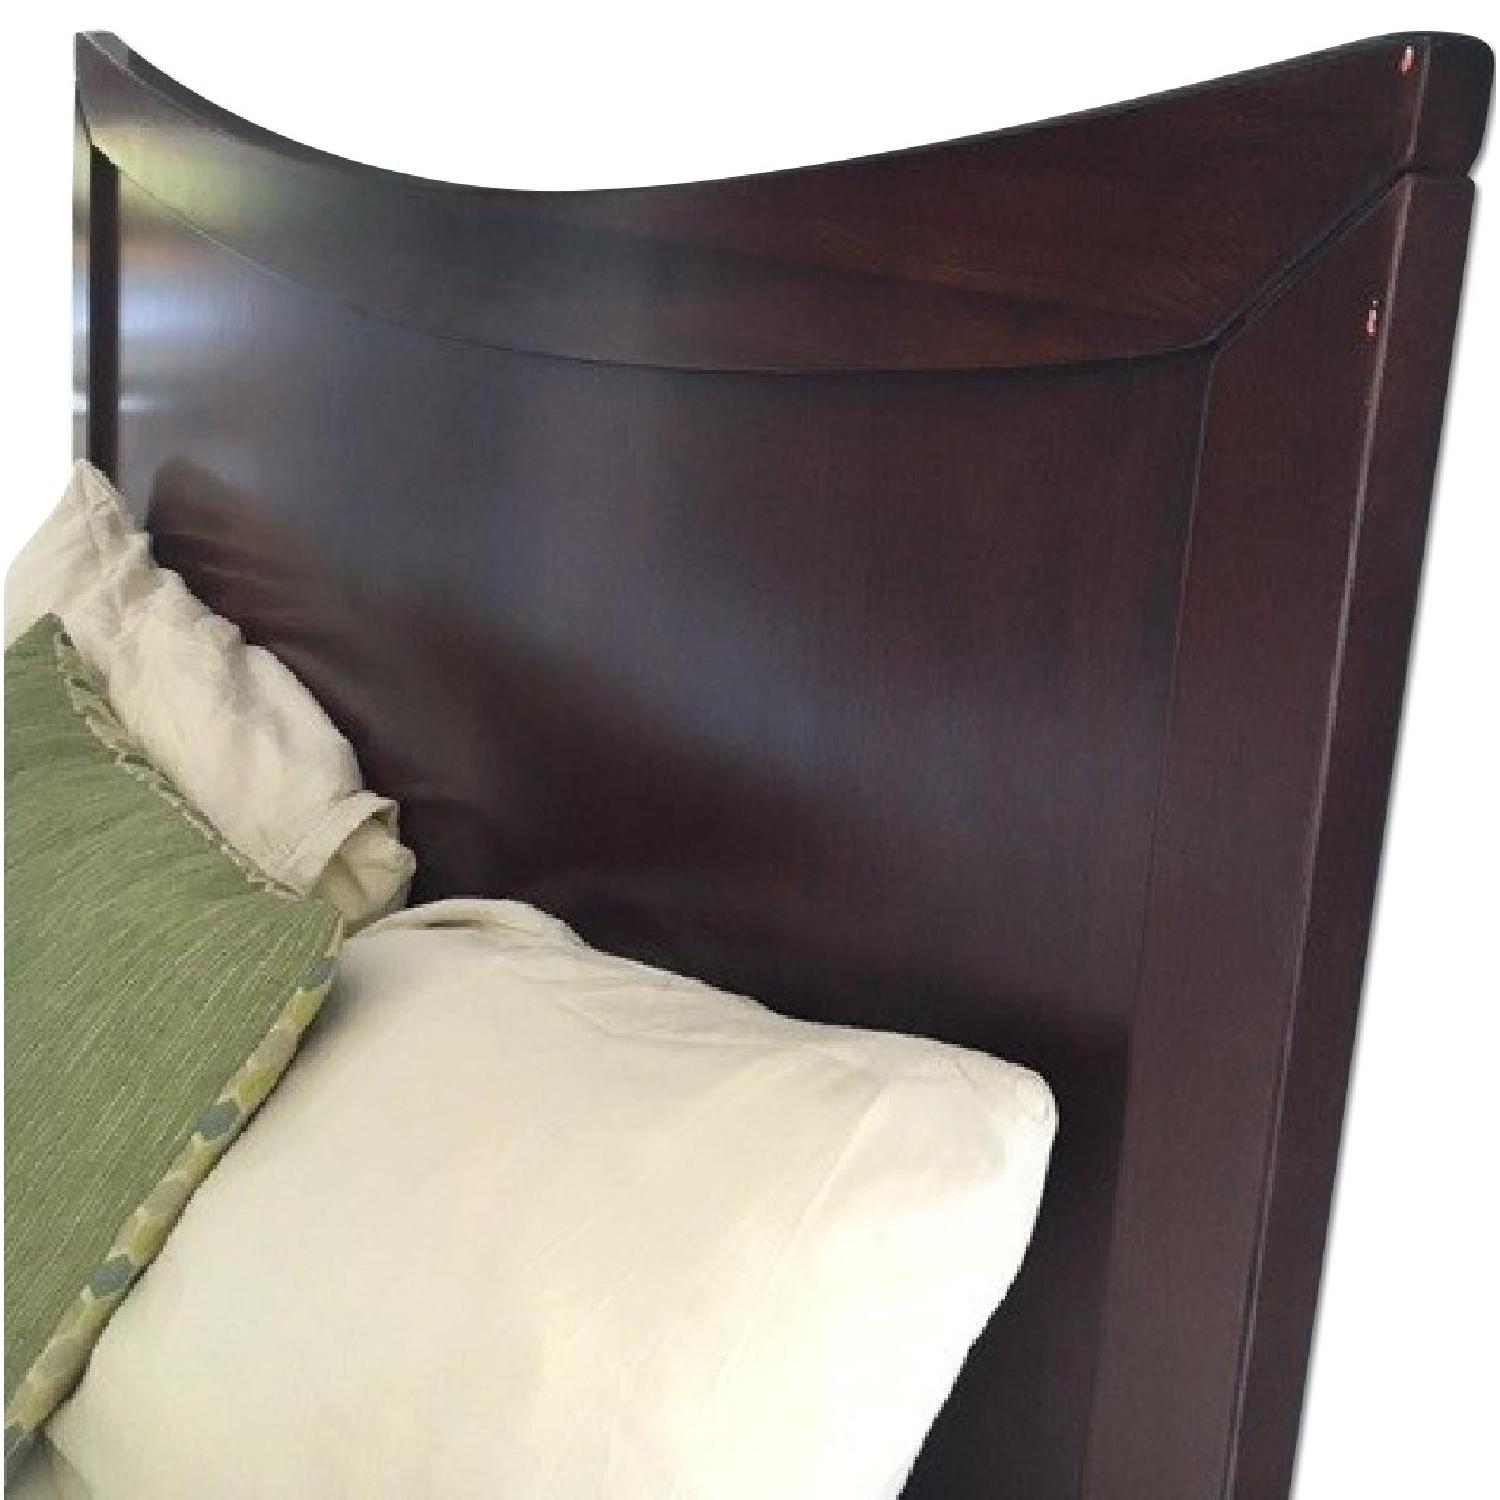 Queen Size Bed Frame w/ Headboard - image-5